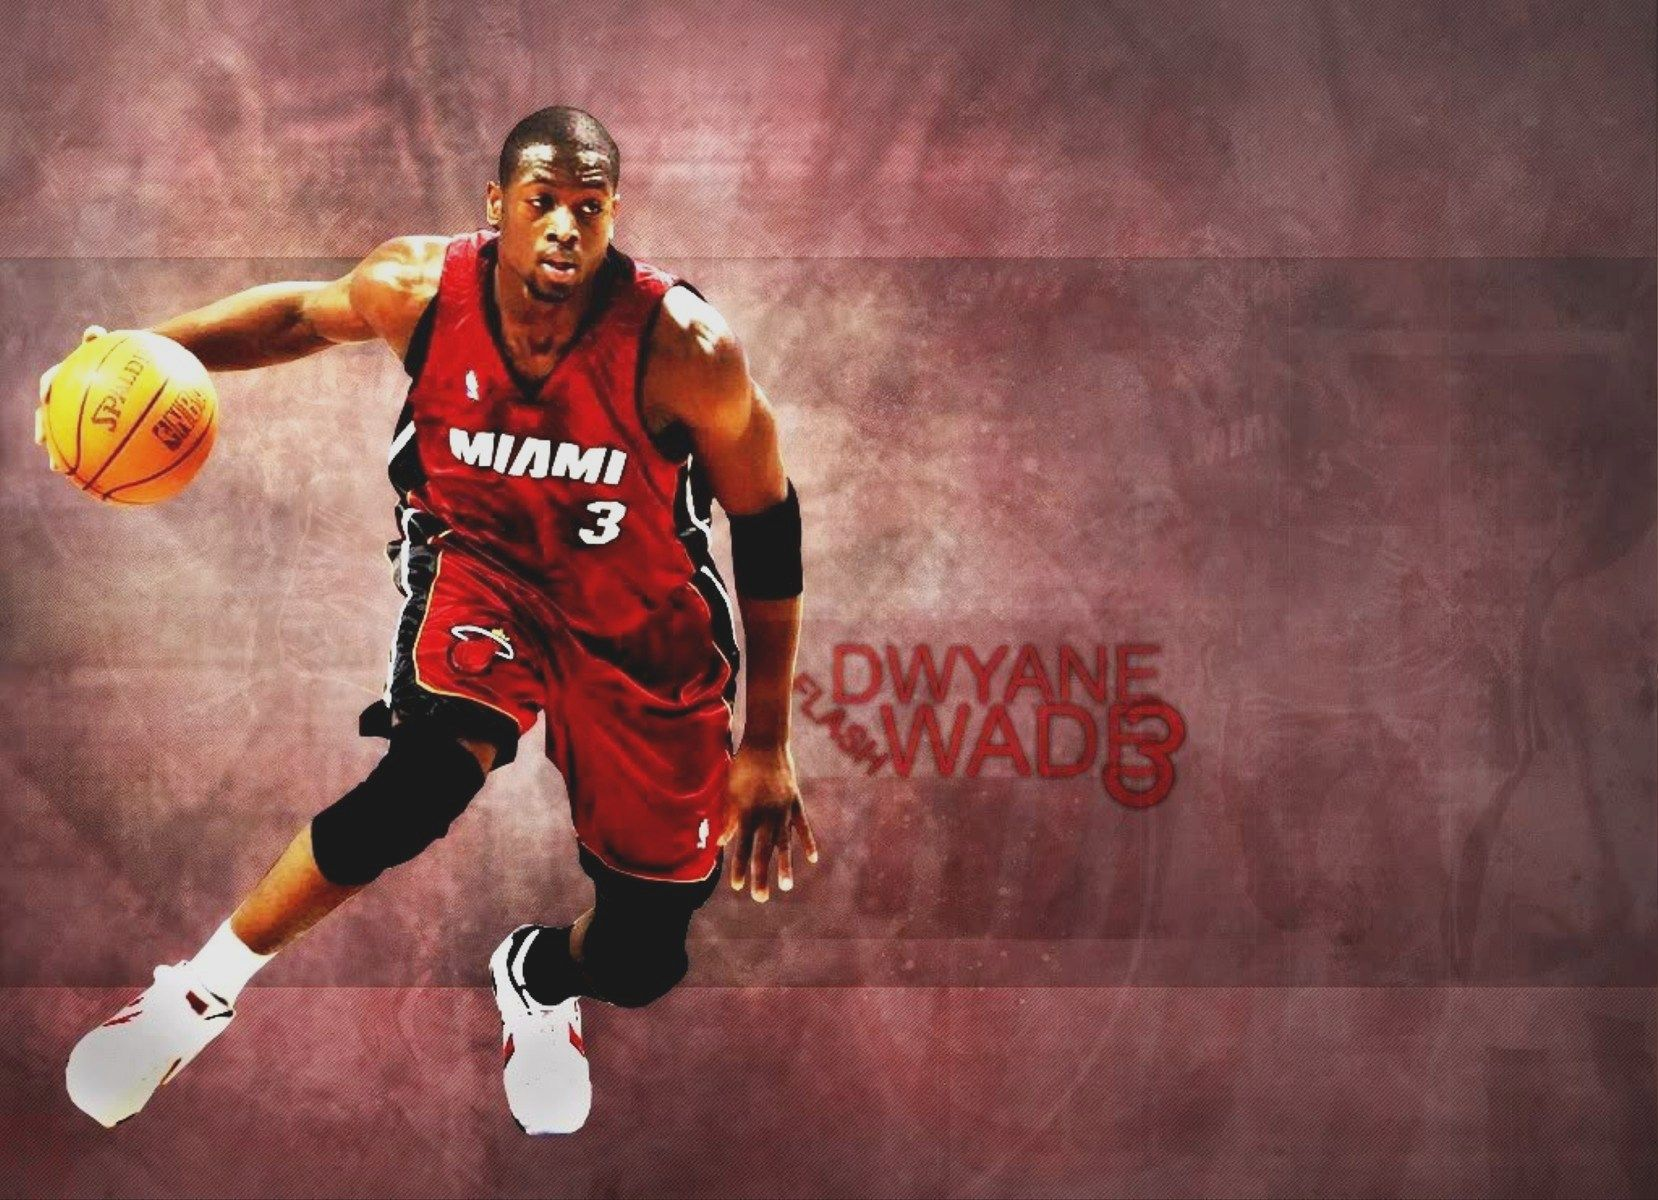 Dwyane Wade 2015 Basketball Players Dwyane Wade 2015 Miami Heat 1658x1200